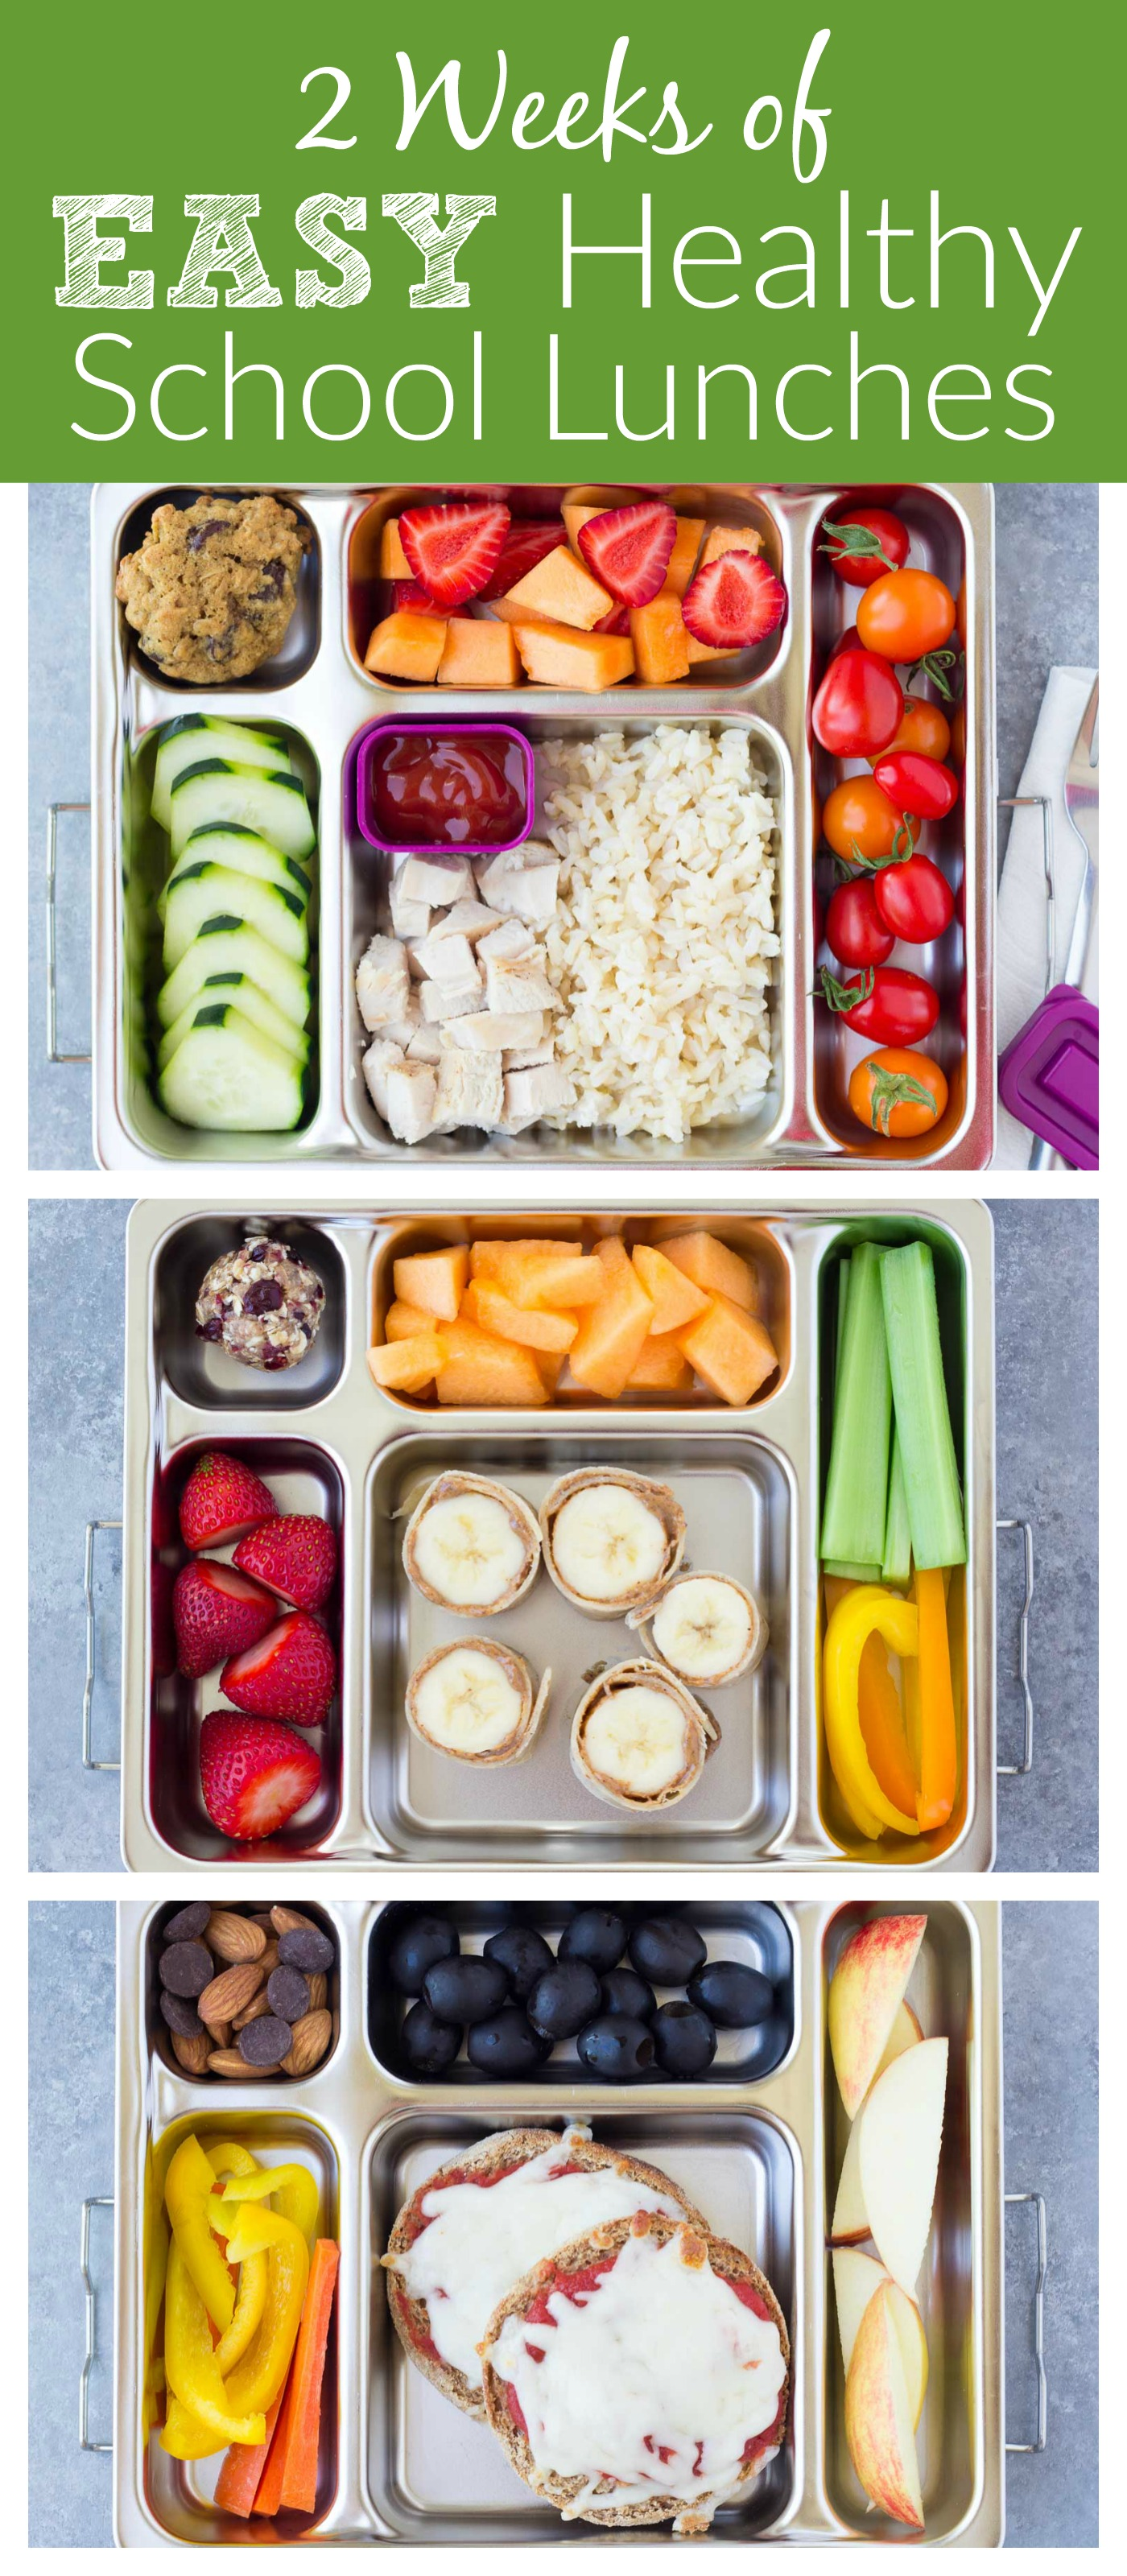 argumentative essay healthy school lunches